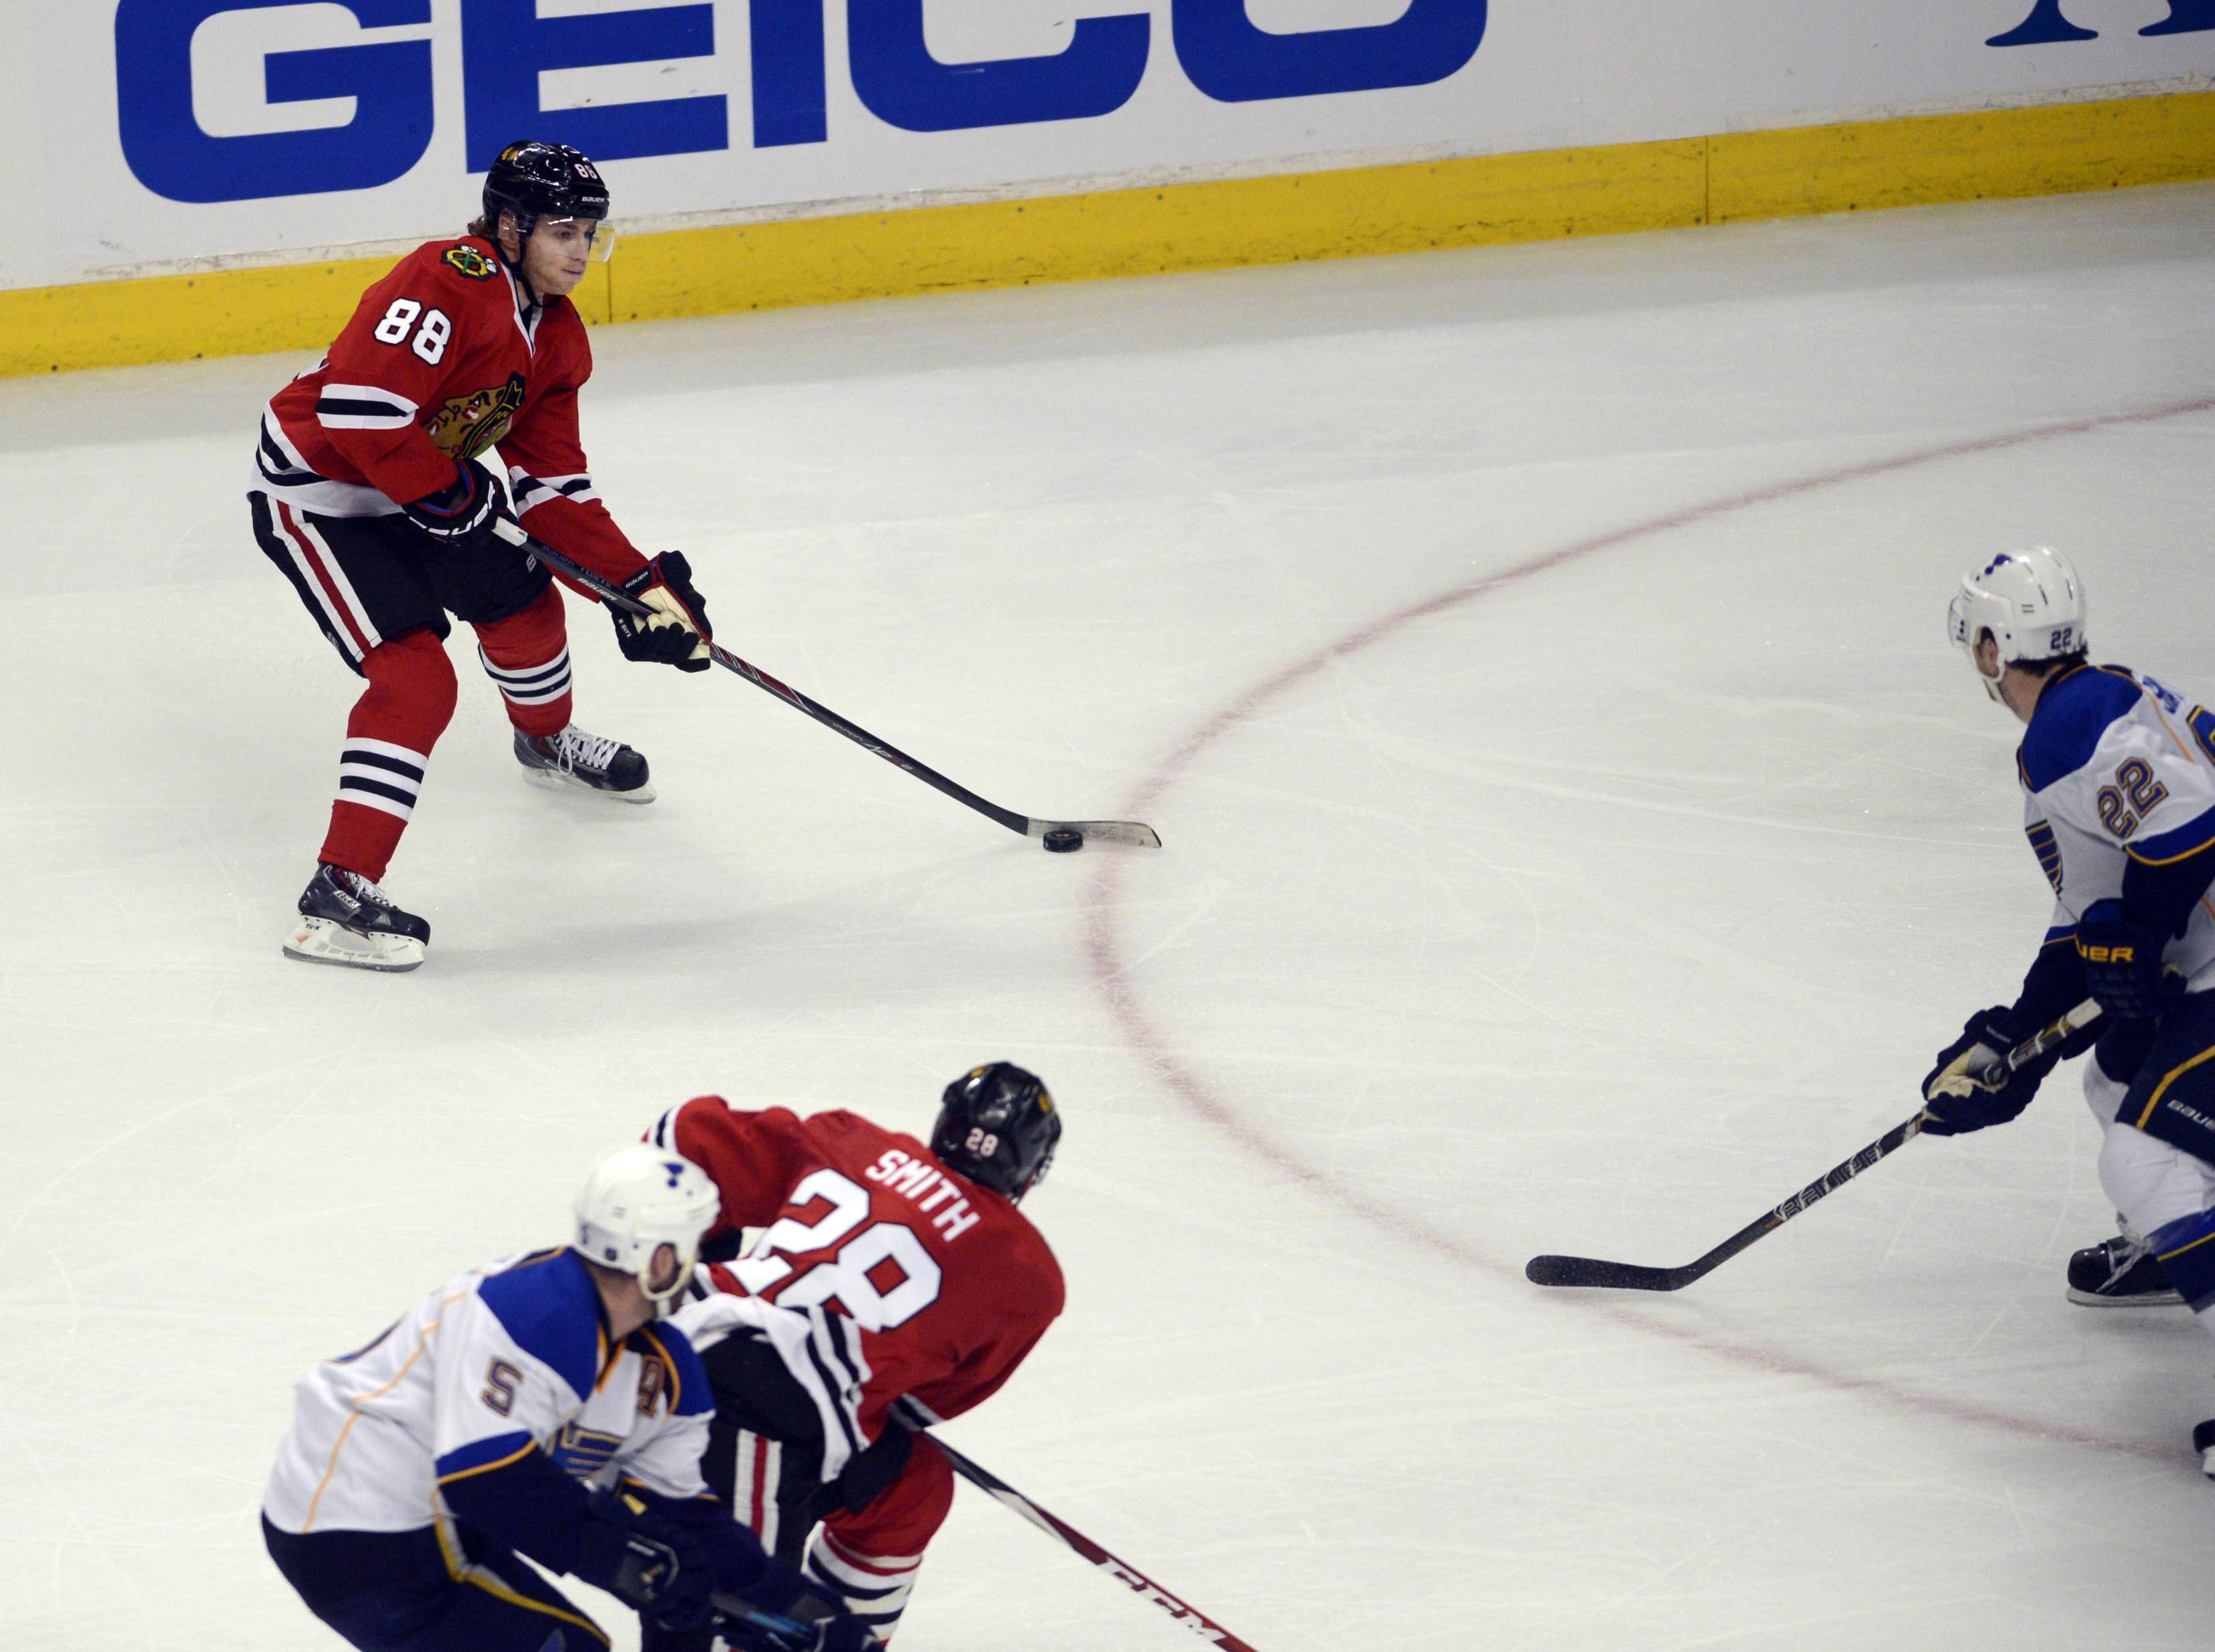 Chicago Blackhawks right wing Patrick Kane lines up his game-winning overtime goal.